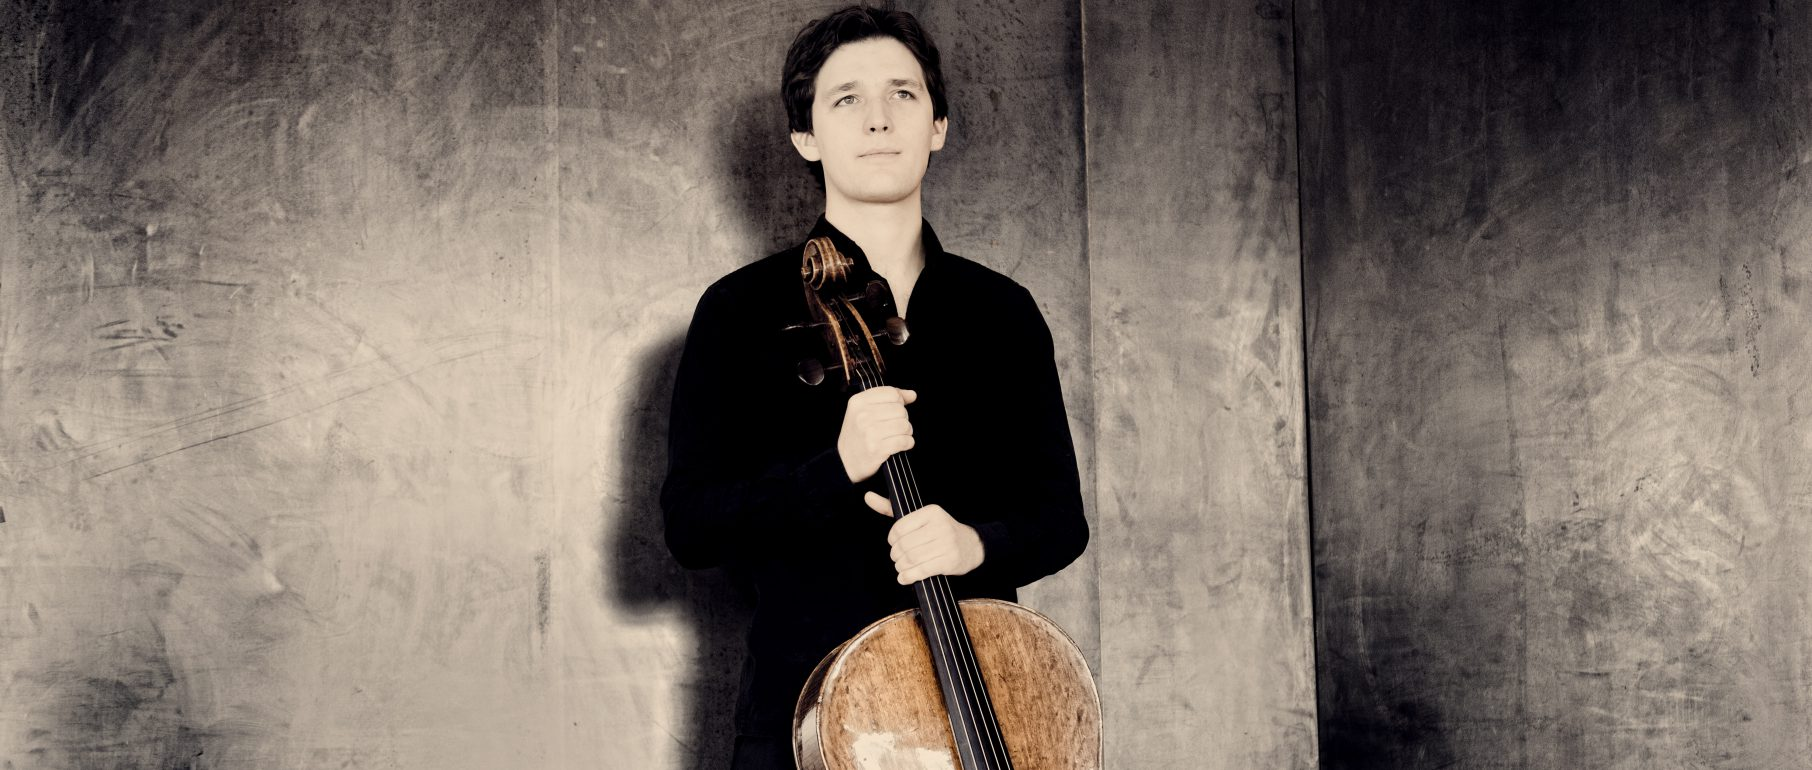 Maximillian Hornung, Cello